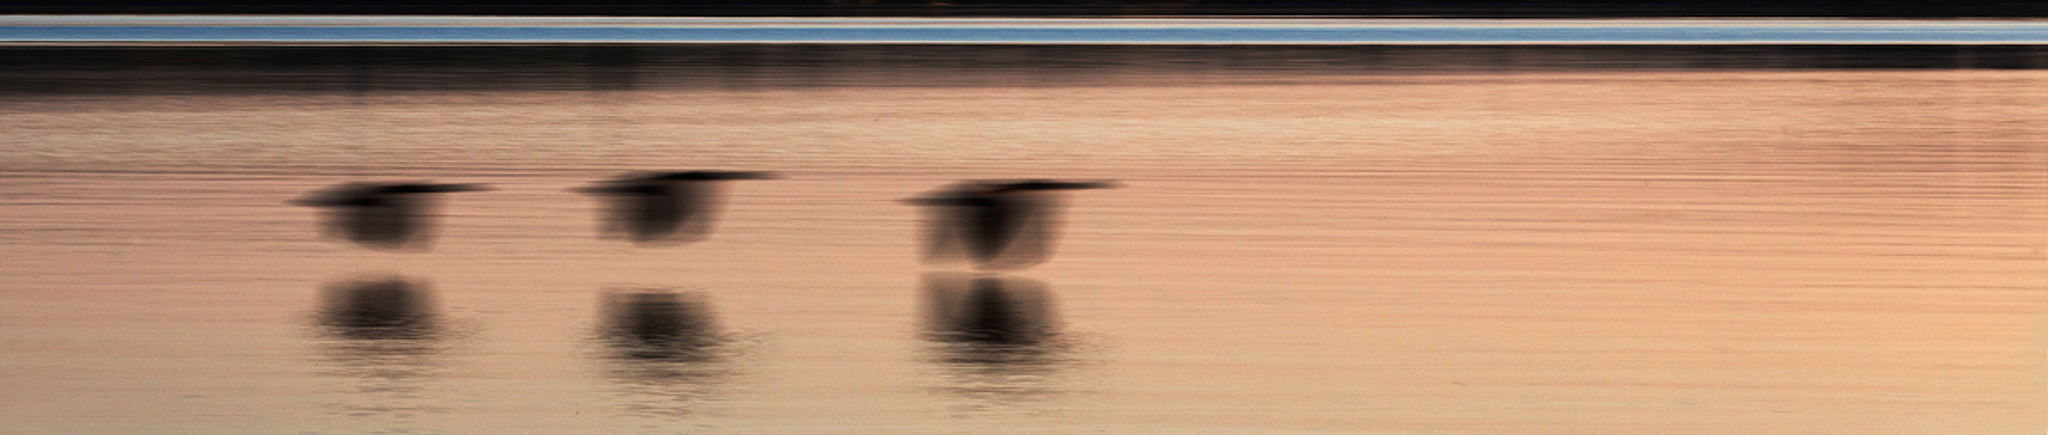 'Geese in Flight' - Intentional Camera Movement